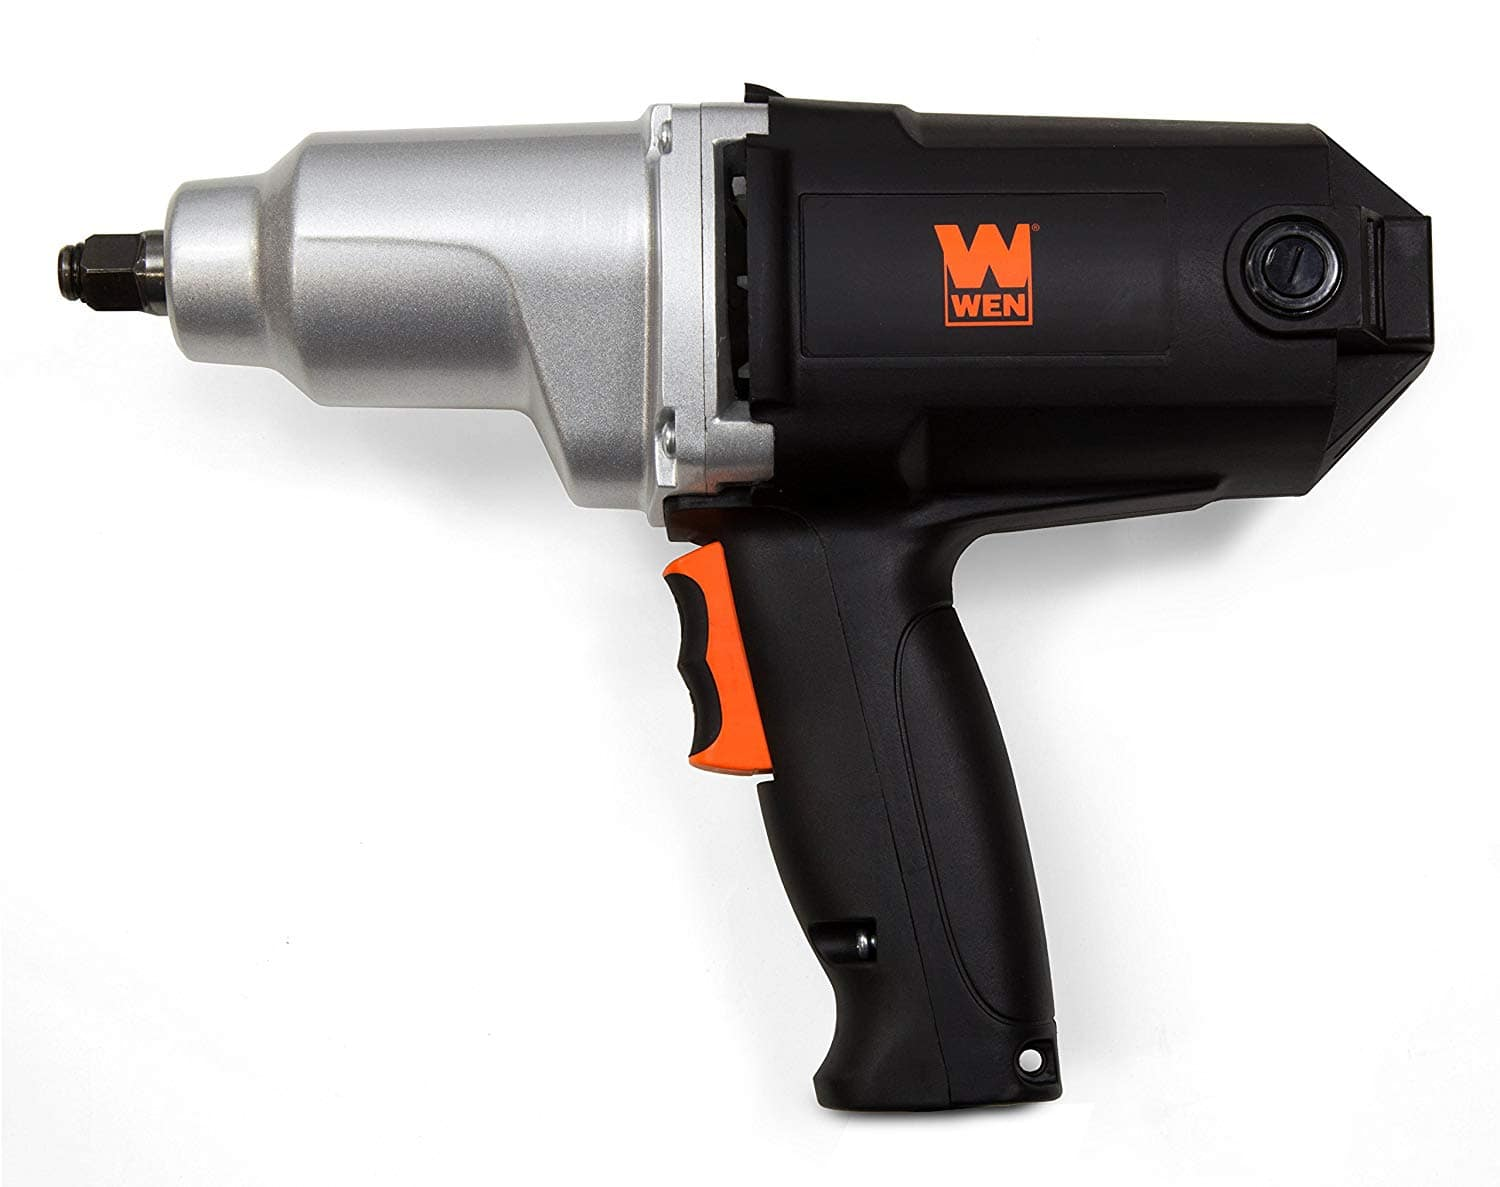 WEN 48107 7.5-Amp 1/2-Inch Two-Direction Electric Impact Wrench $39.50